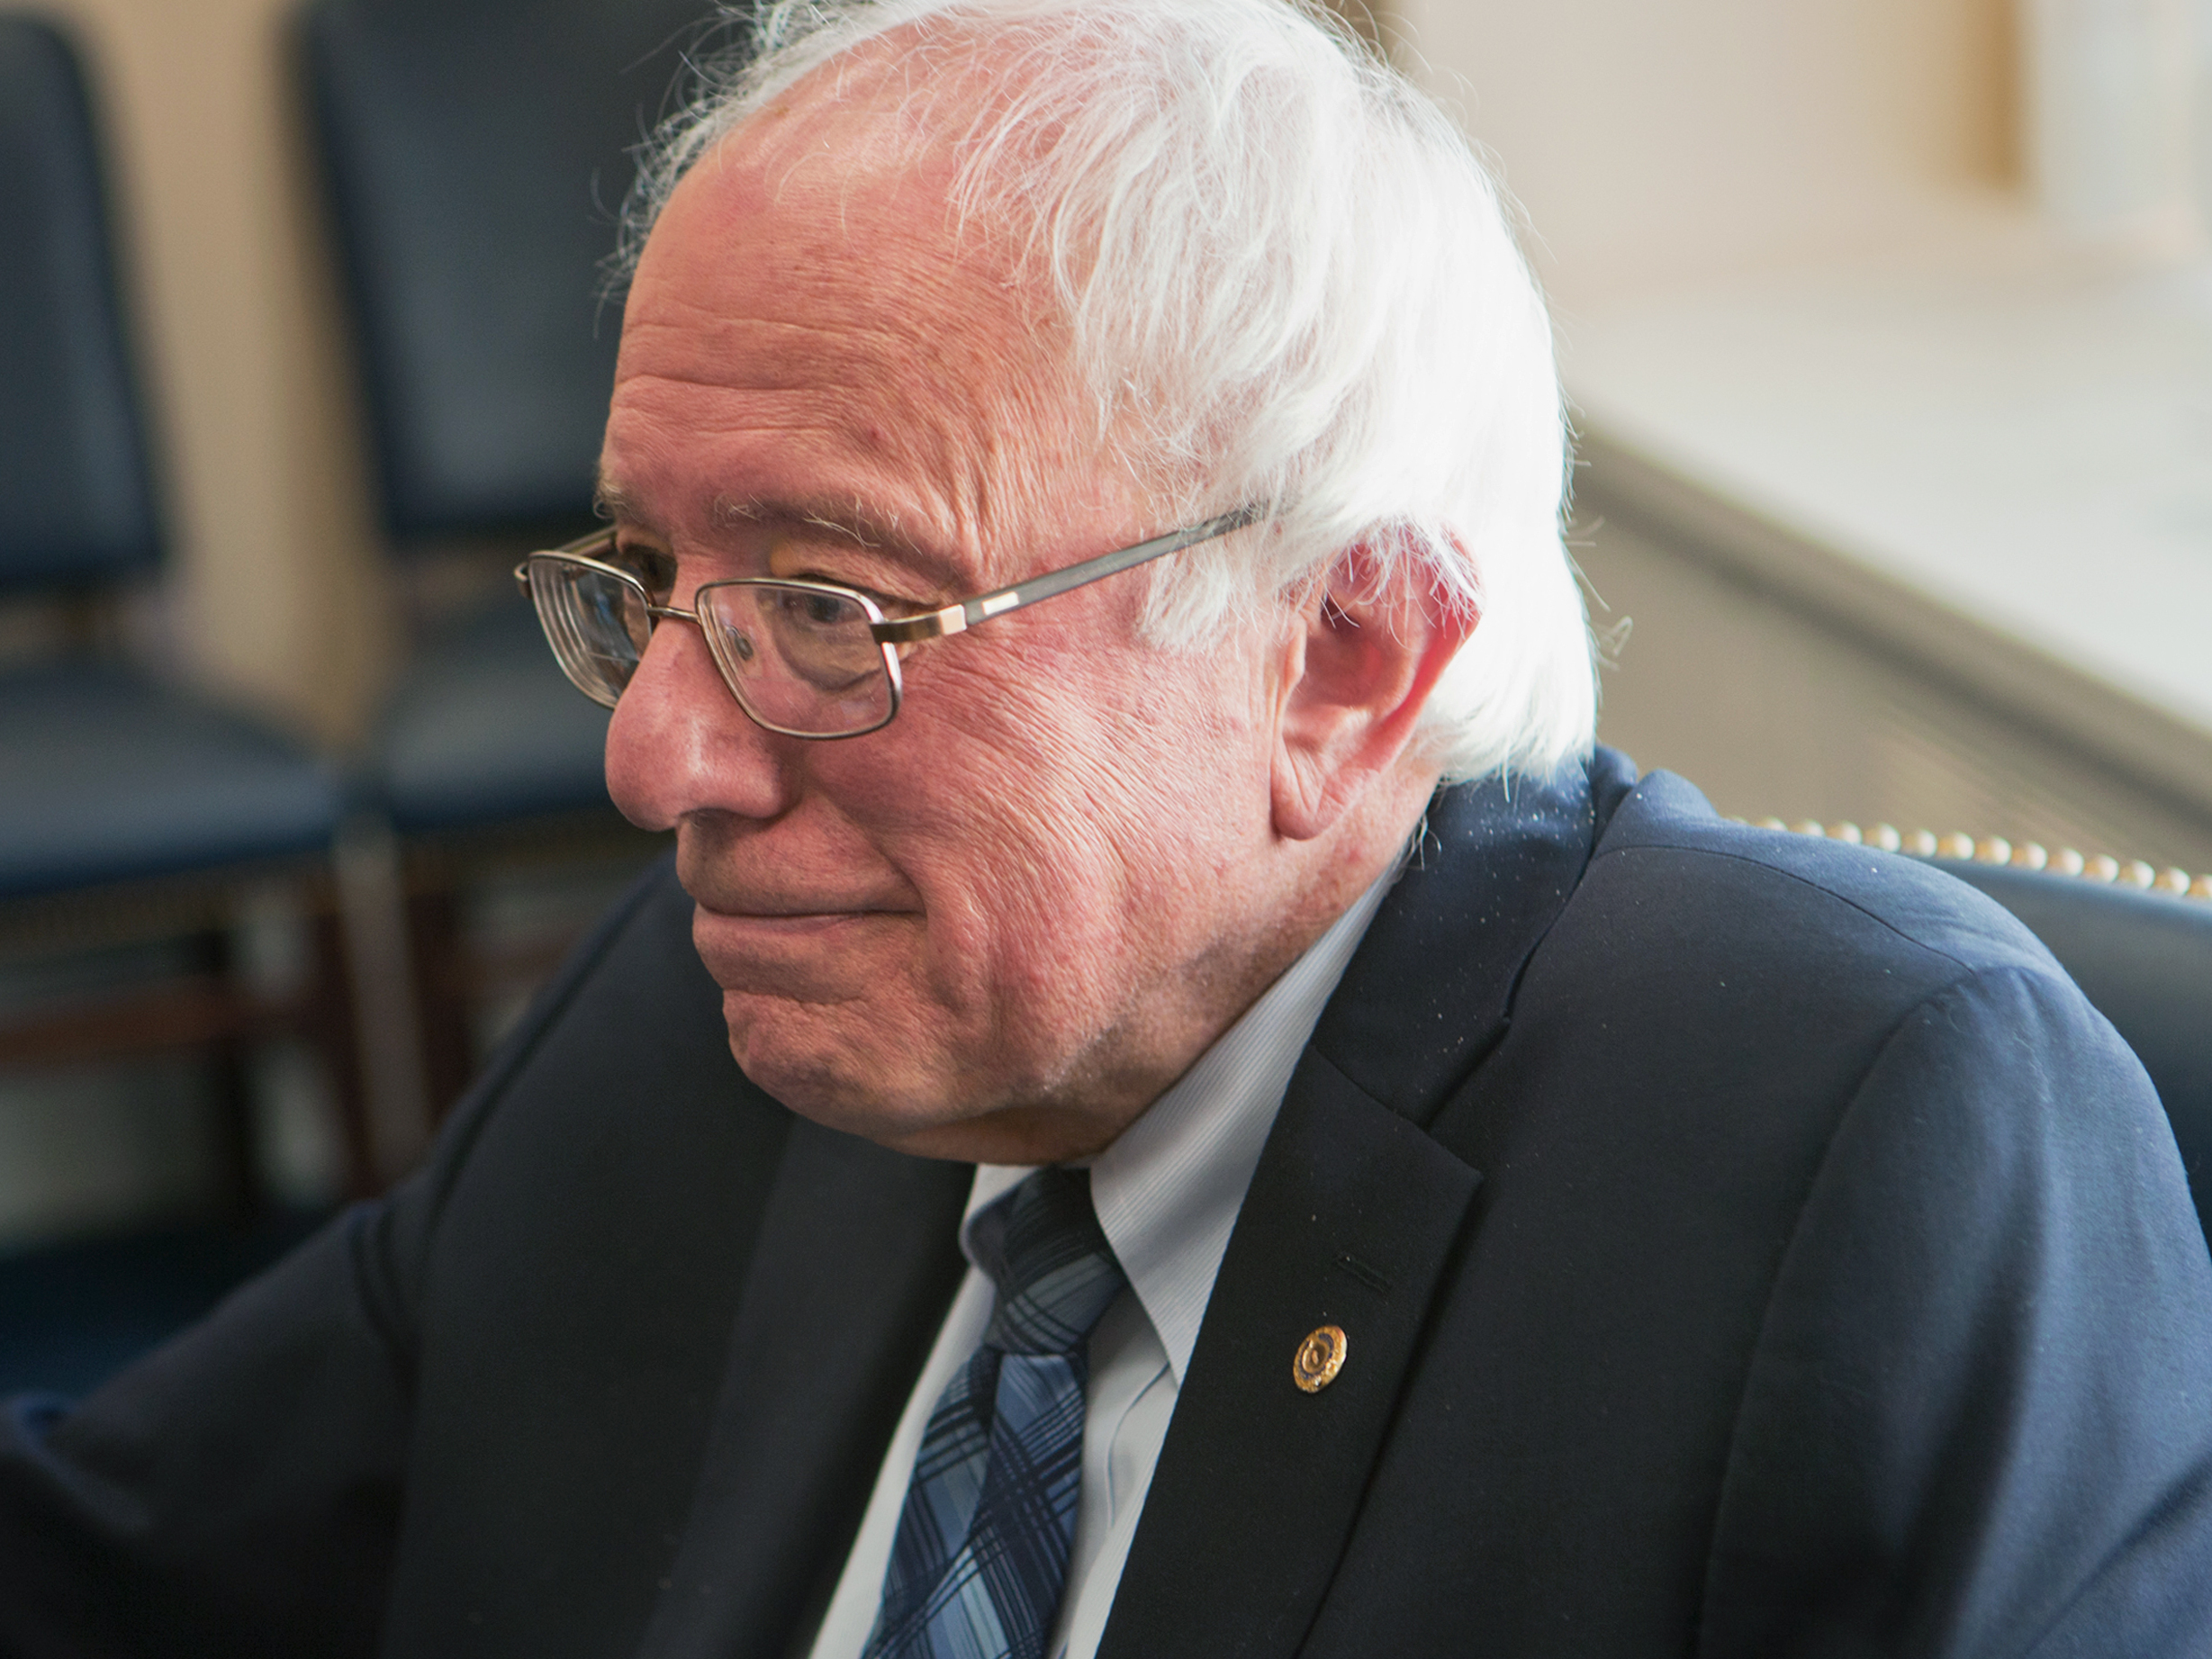 Bernie Sanders, In Full: His Take On Clinton, Socialism And SuperPACs